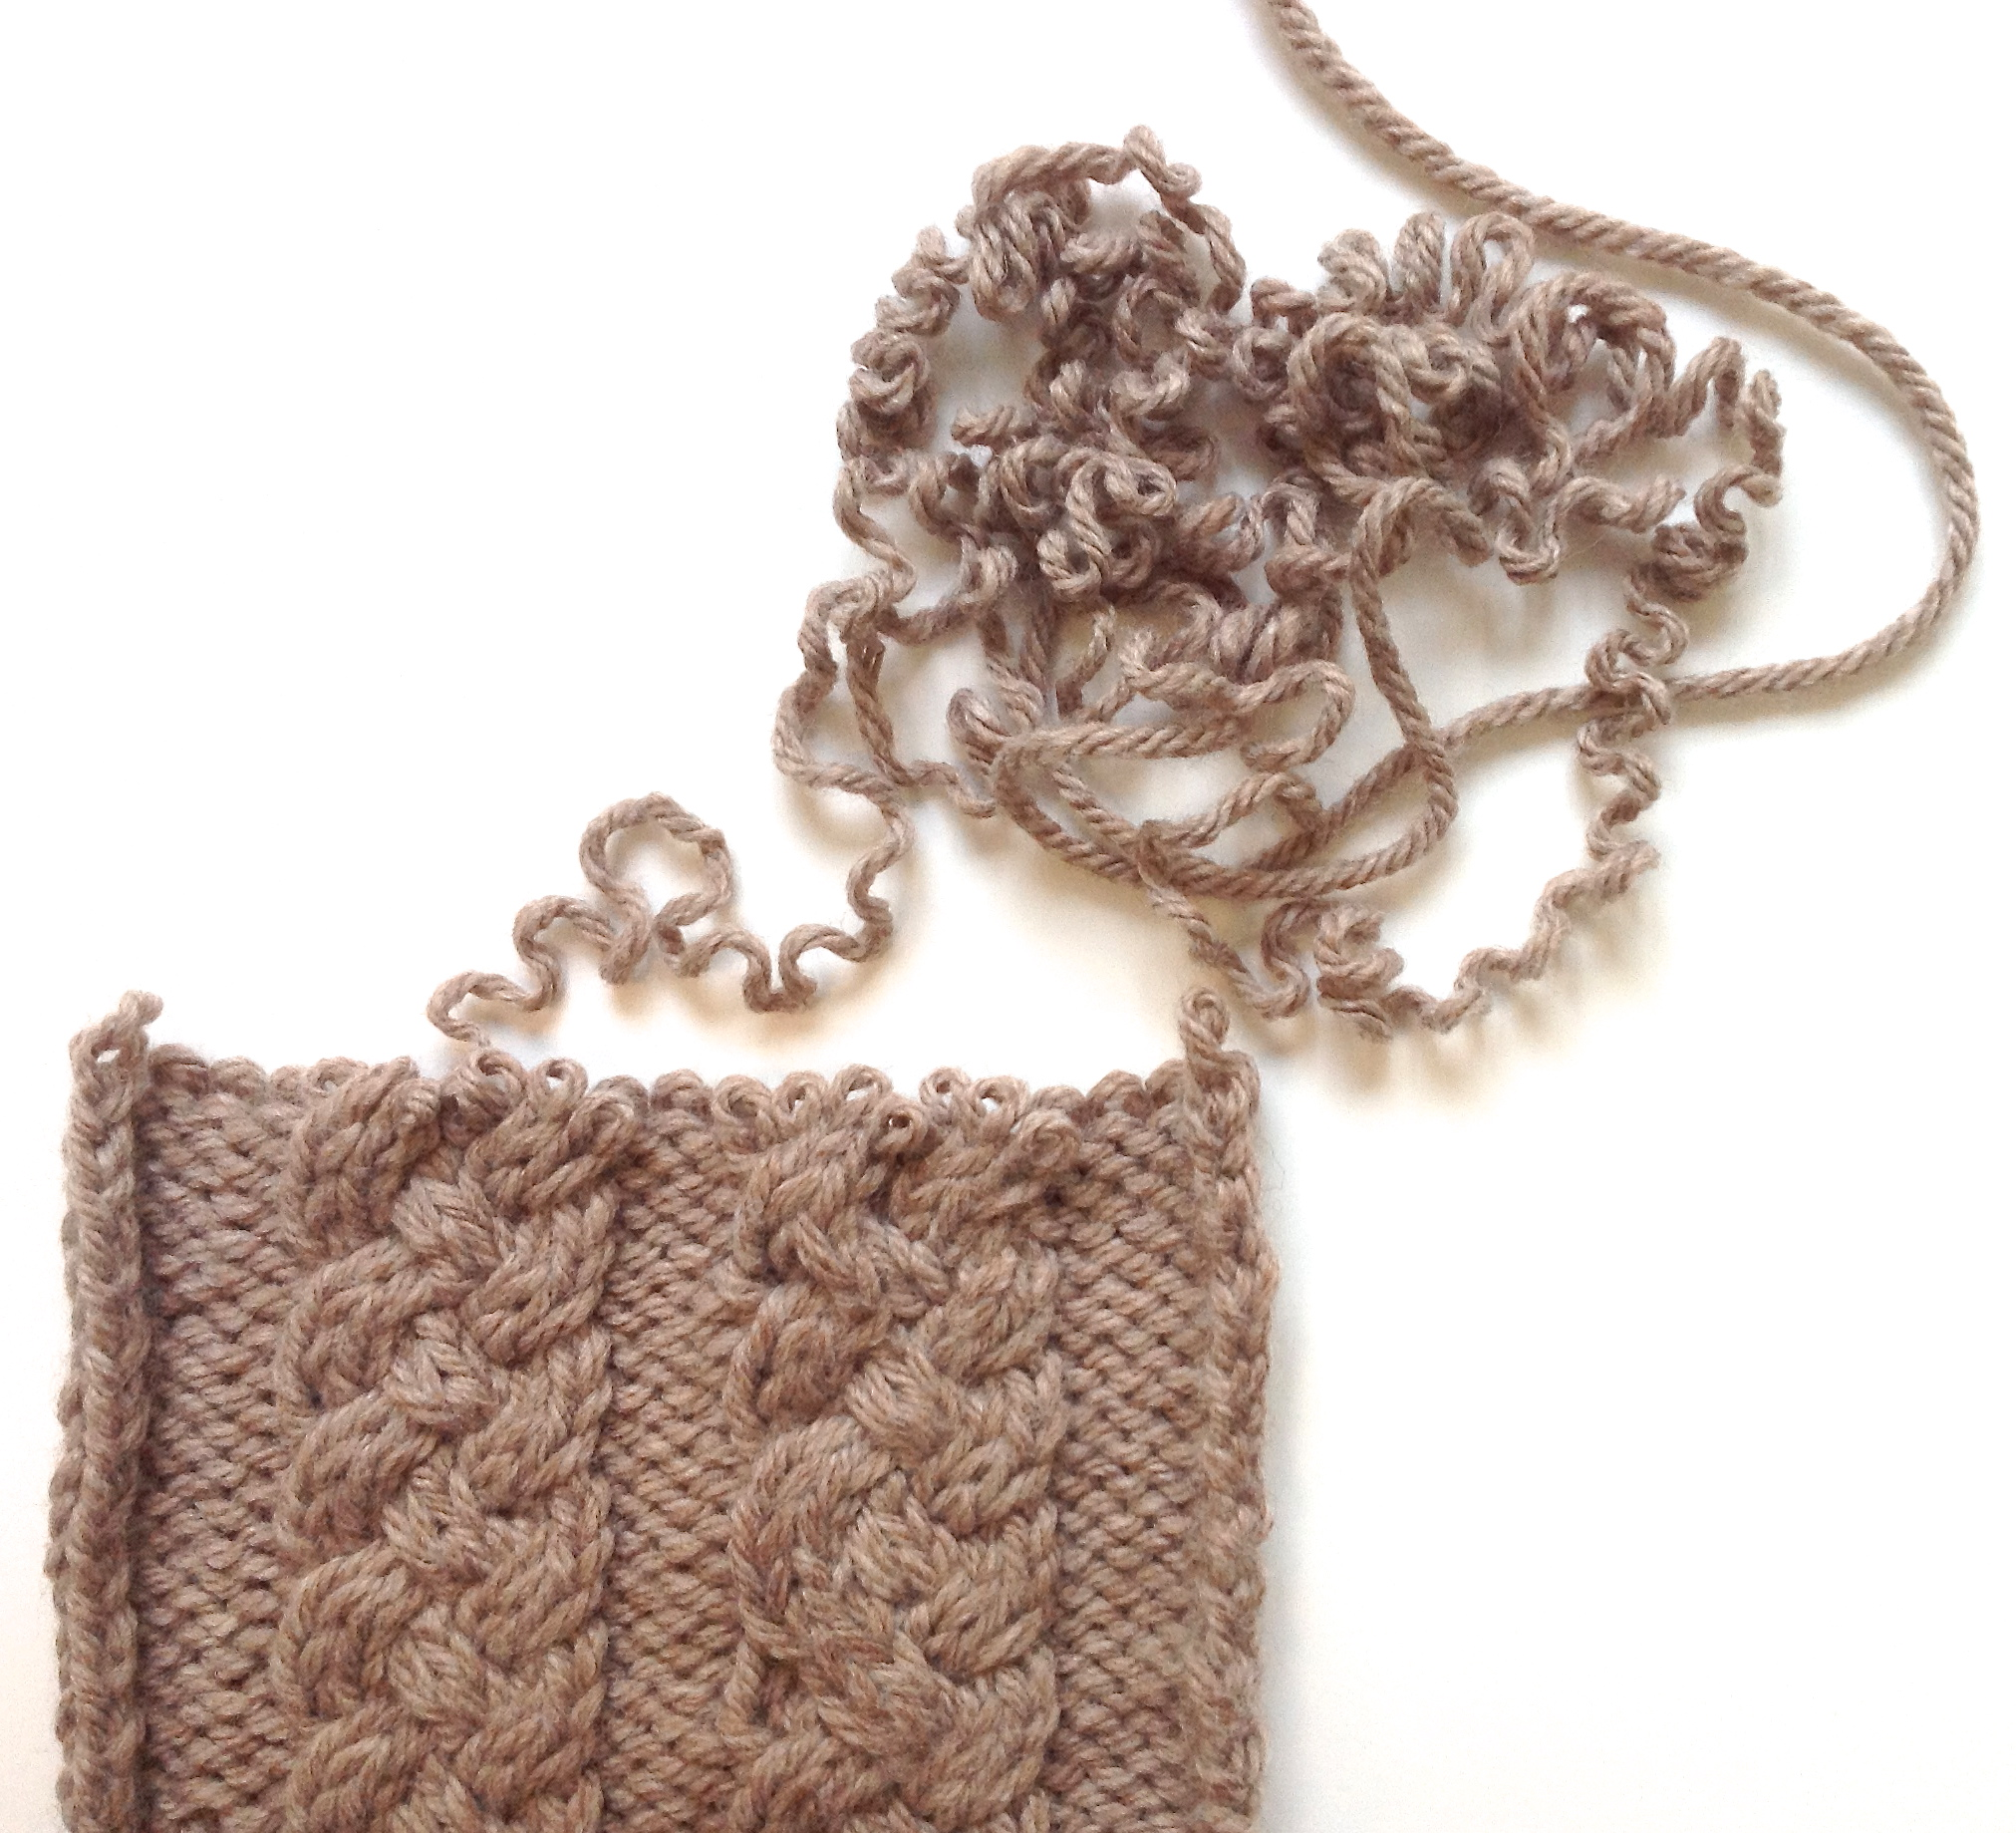 How To Unravel Knitting Stitches : Emily Explains: What if I have to unravel my knitting again? Is this okay? ...